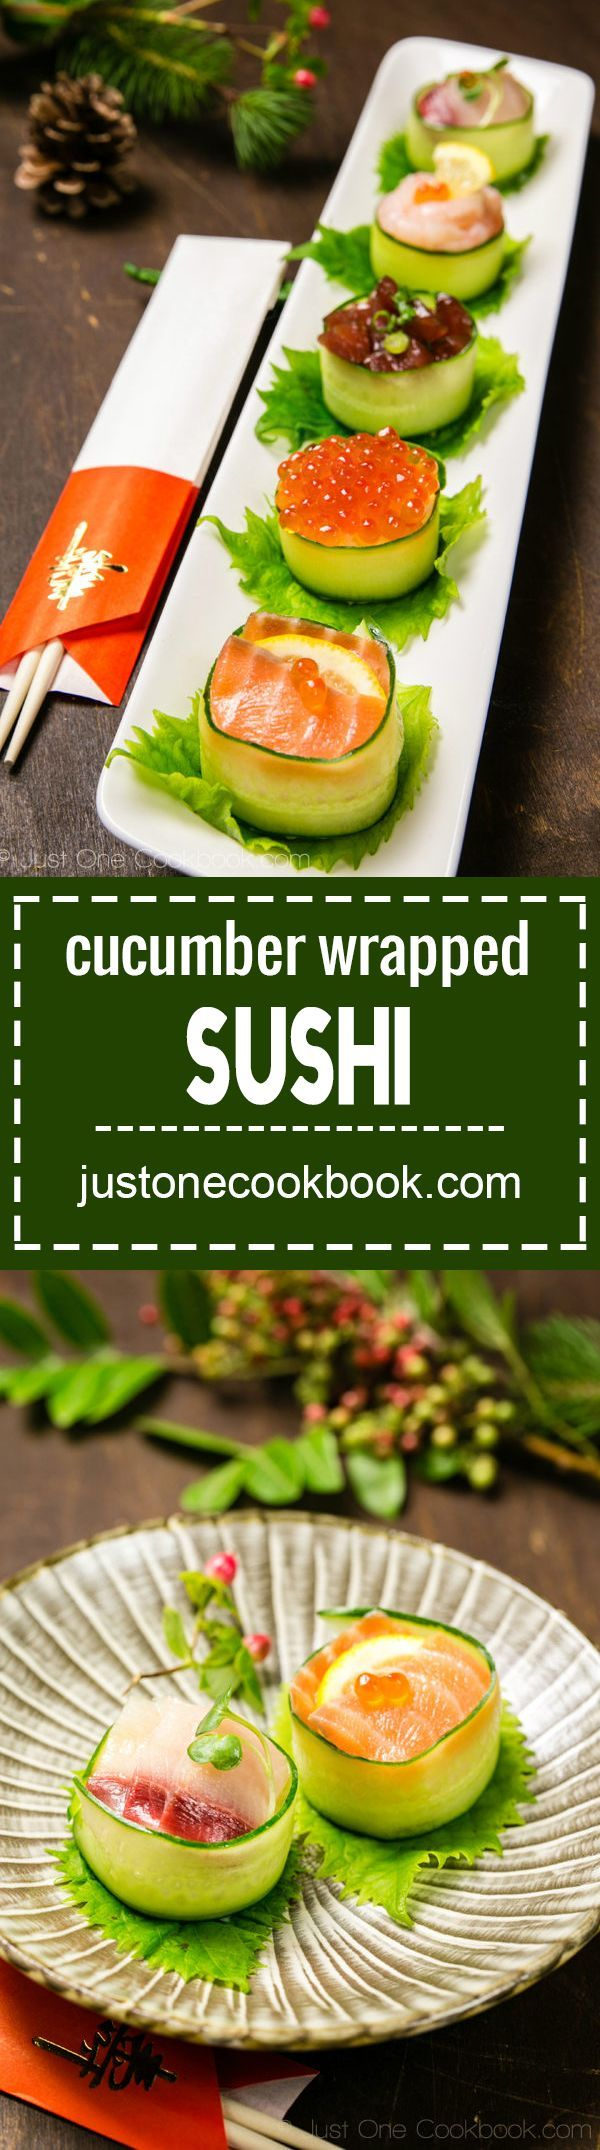 Cucumber Wrapped Sushi (きゅうりの軍艦巻き) | Easy Japanese Recipes at JustOneCookbook.com